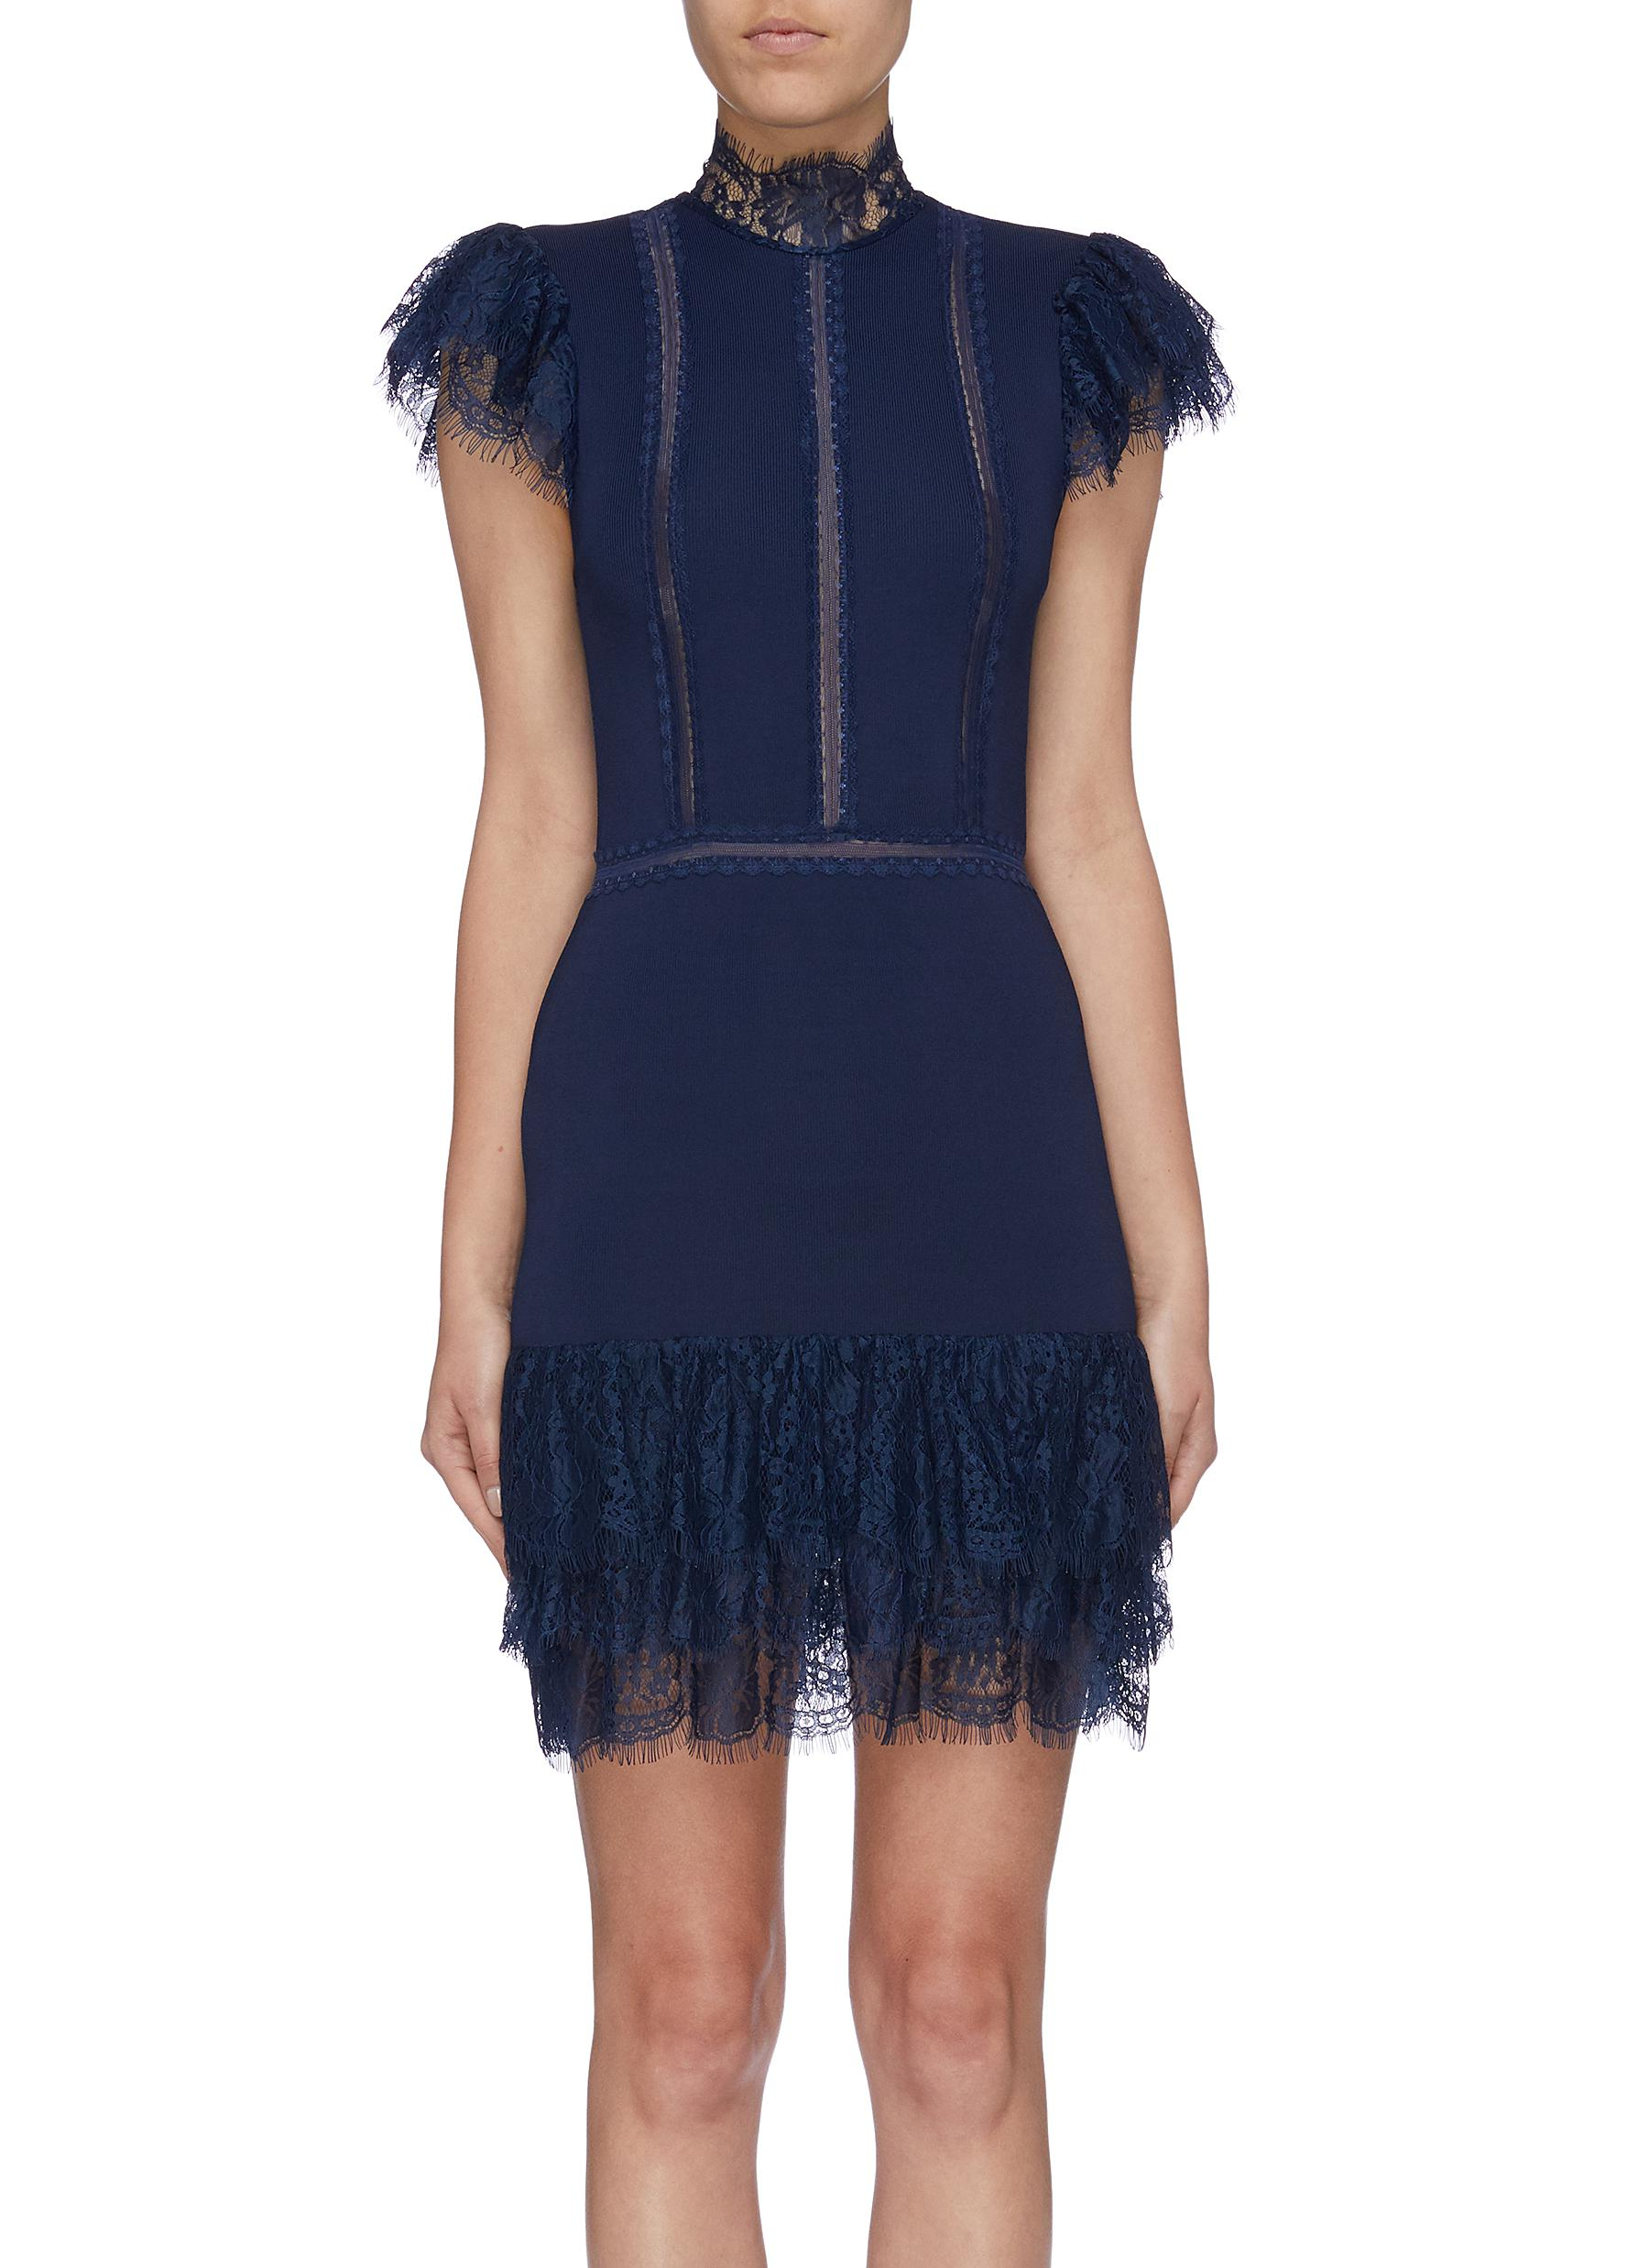 Roset lace trim ruffle hem dress by Alice + Olivia